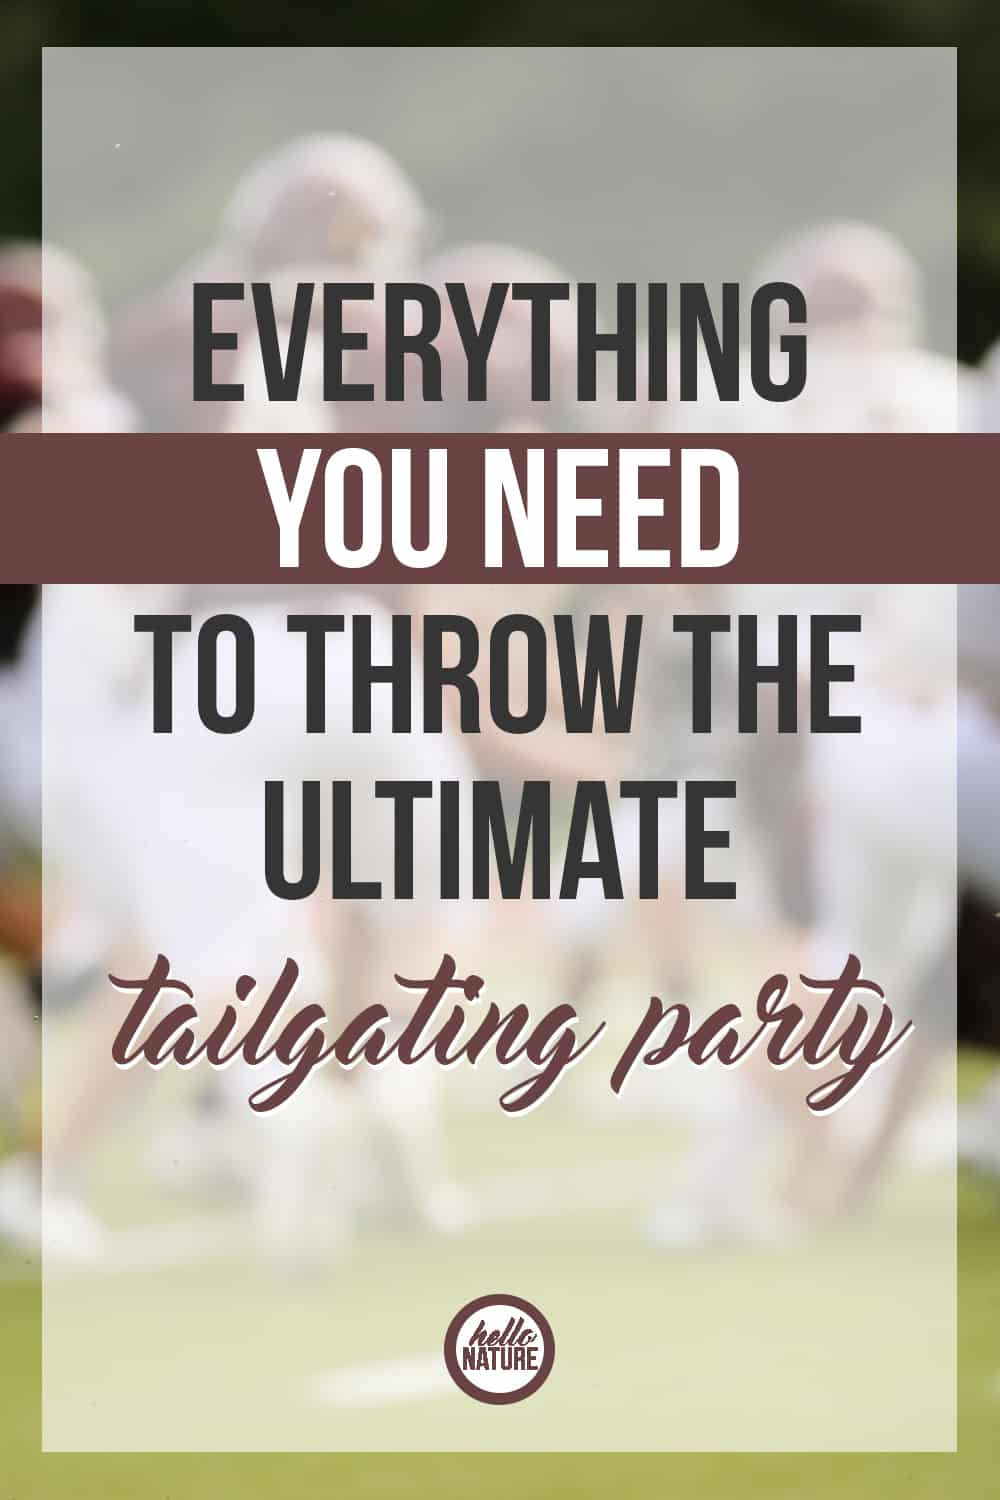 Tailgating season is upon us! Bring on Sundays filled with football, snacks galore, and family fun. If you're in need of the ultimate tailgating party ideas, you've come to the right place!